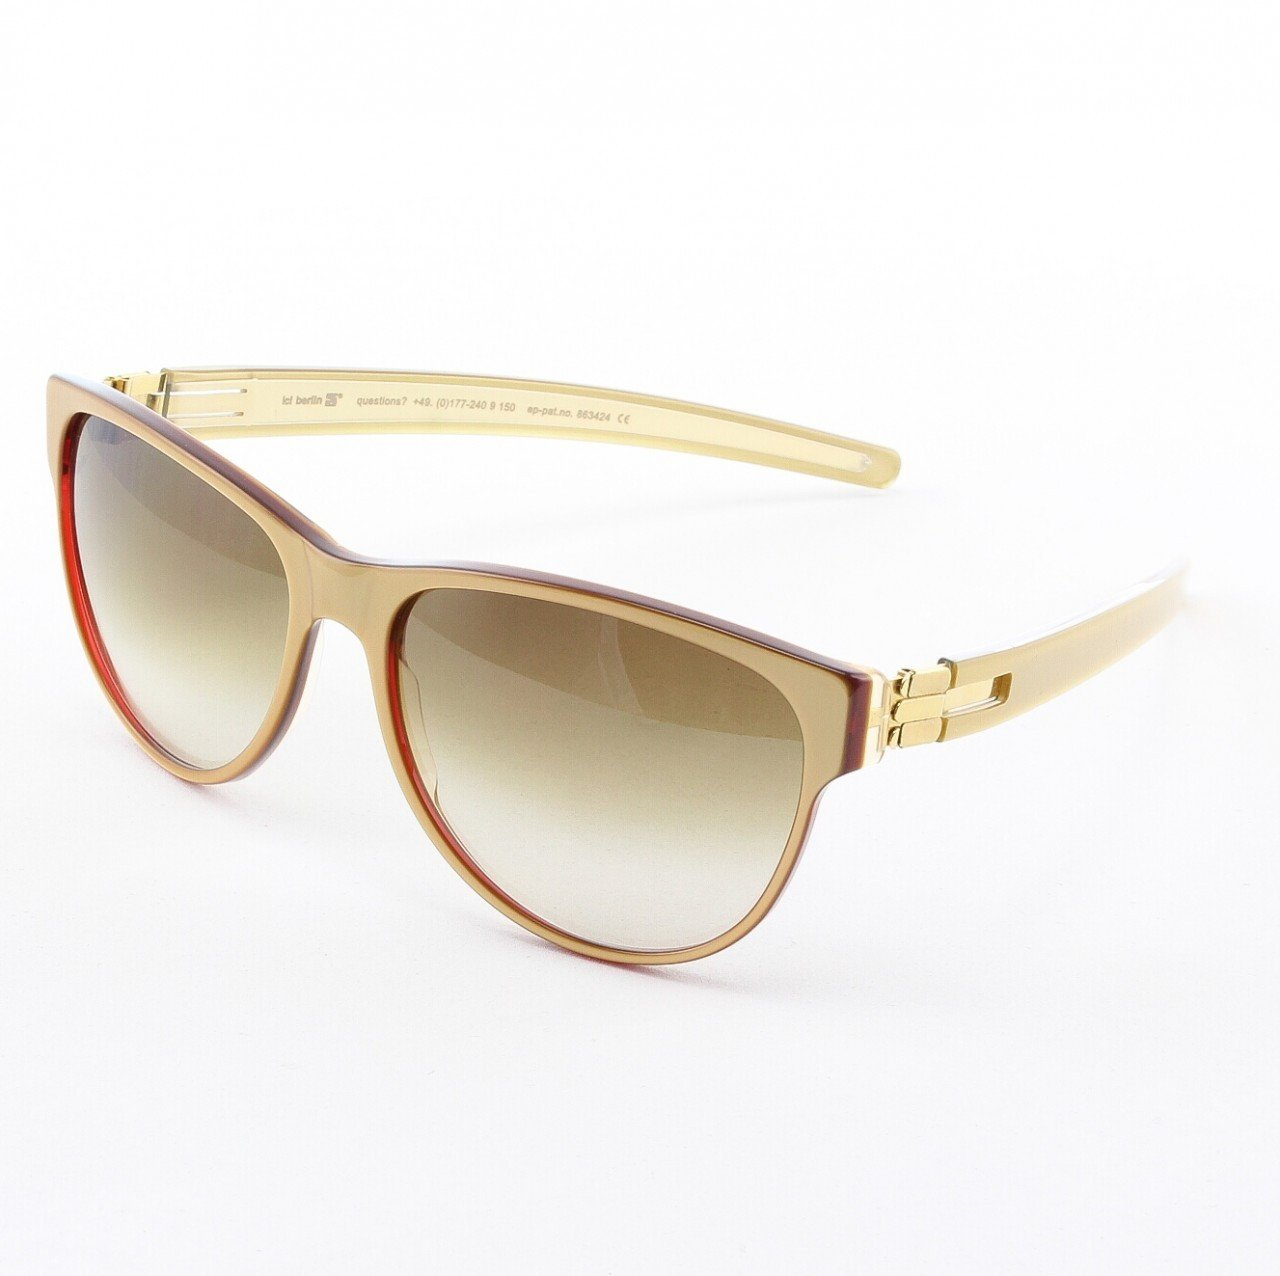 ic! Berlin Kate Sunglasses Col. Gold / Red with Brown Gradient Lenses